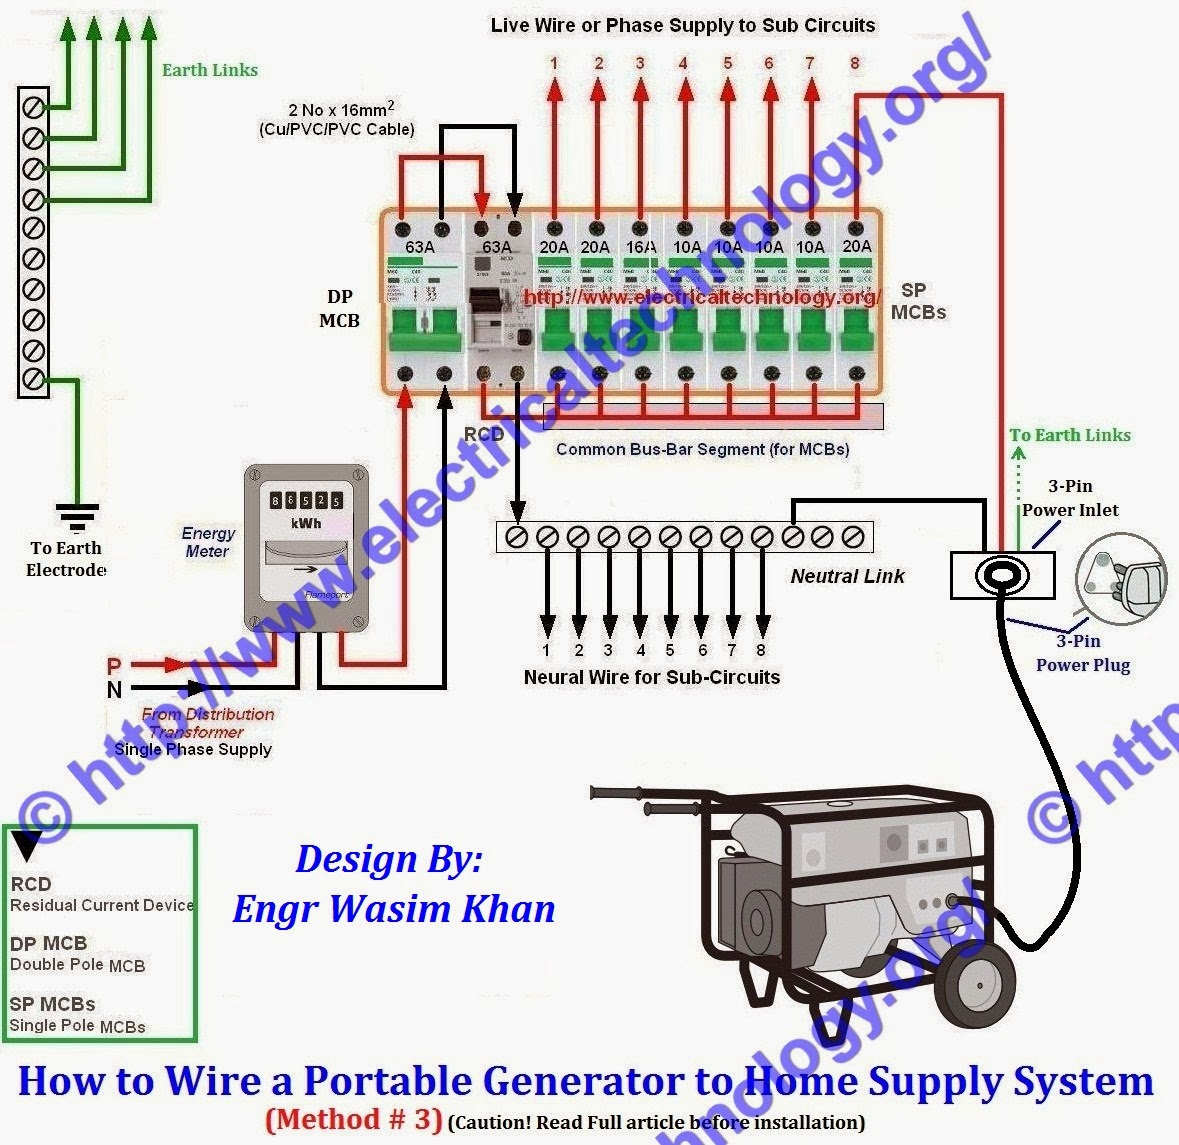 electric generator wiring diagram together generac generator electric generator wiring diagram together generac generator besides generac automatic transfer switch wiring diagram together